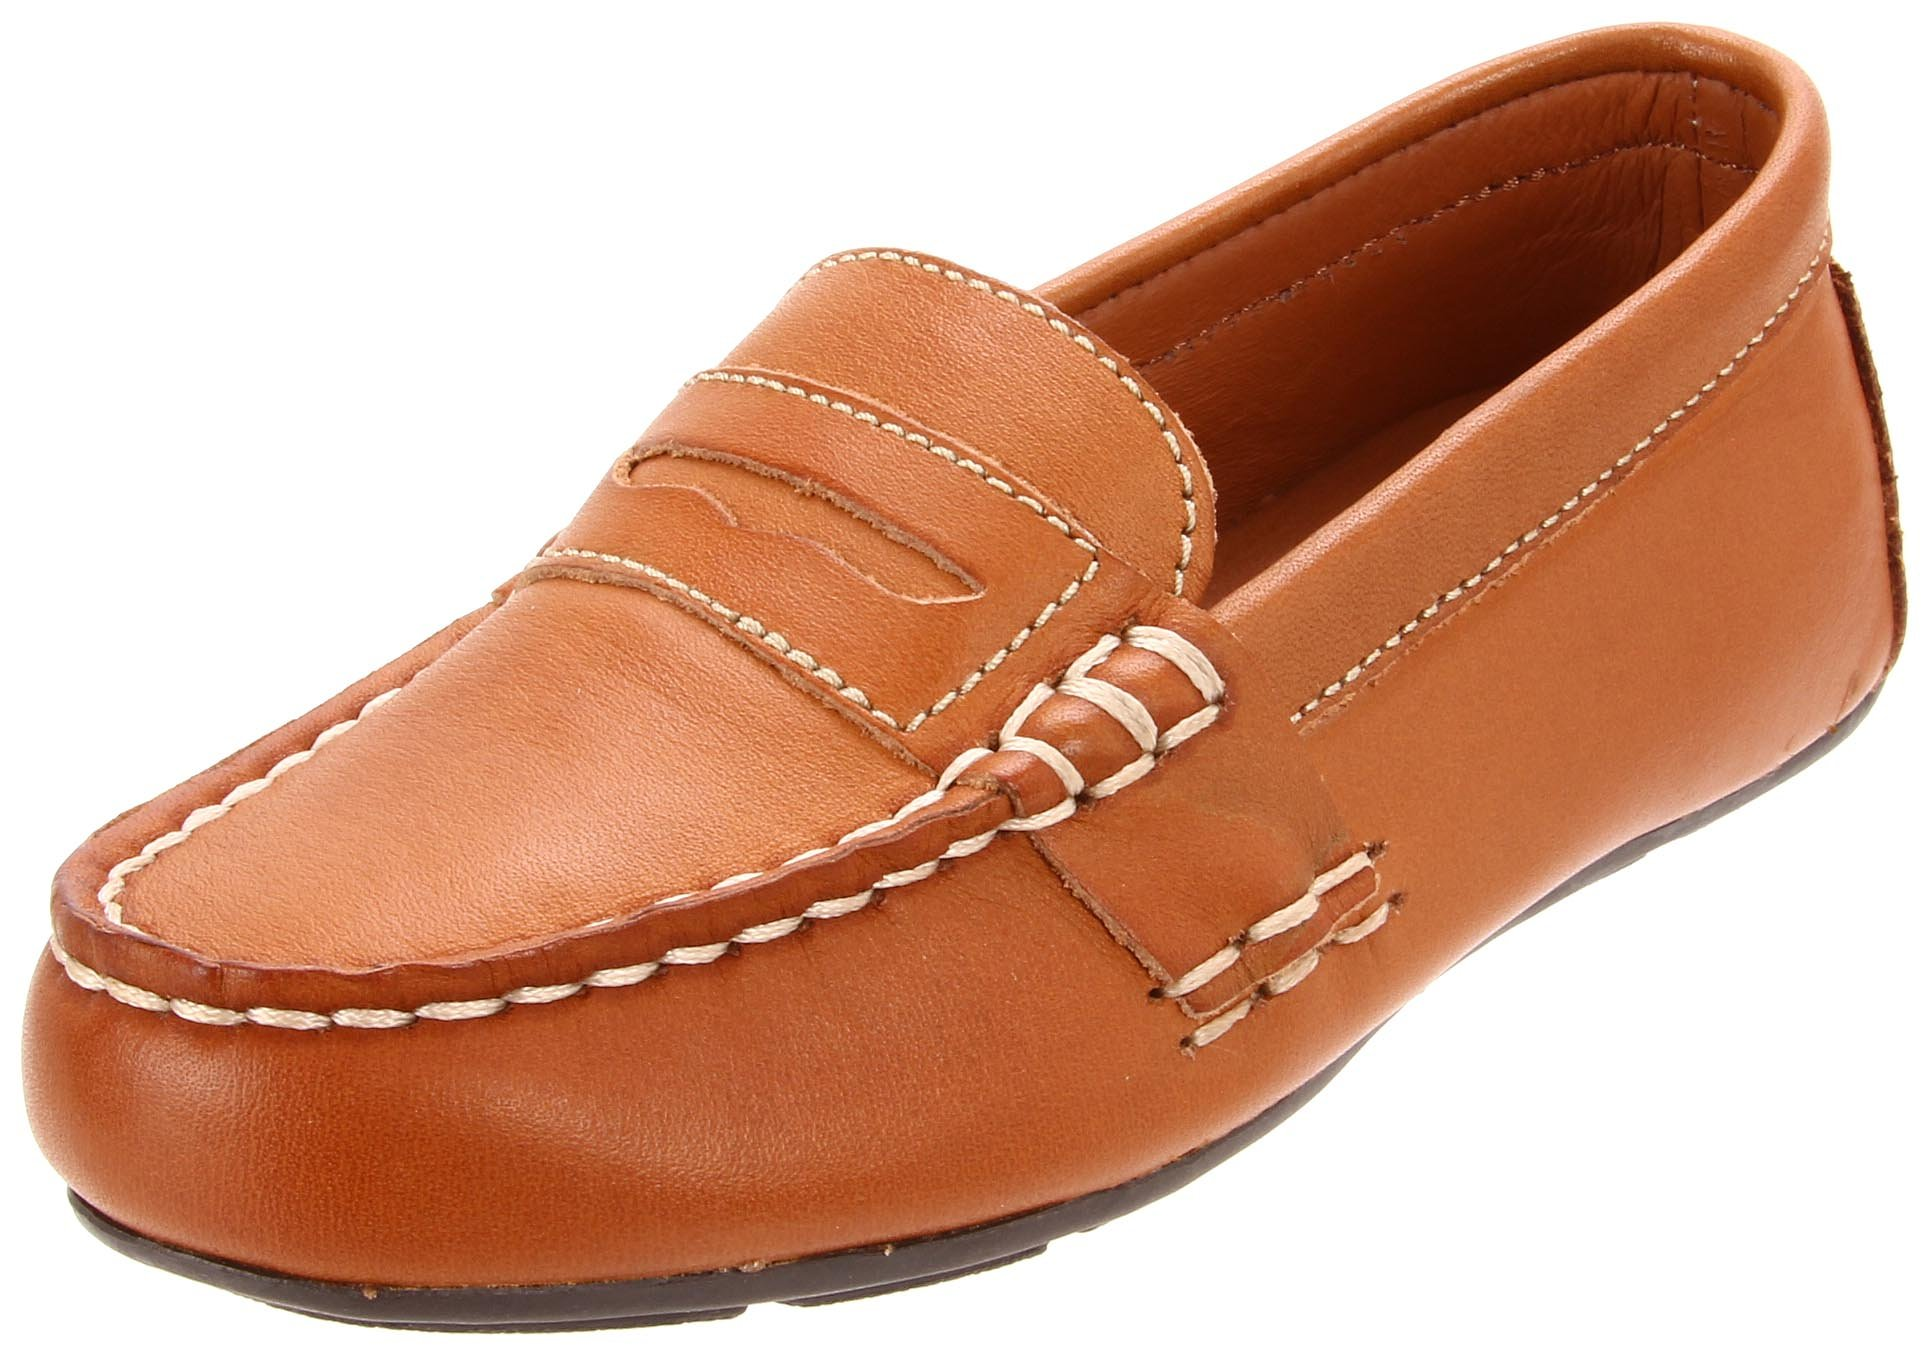 Polo by Ralph Lauren Telly Slip-On (Toddler/Little Kid/Big Kid),Tan,3 M US Little Kid by Polo Ralph Lauren